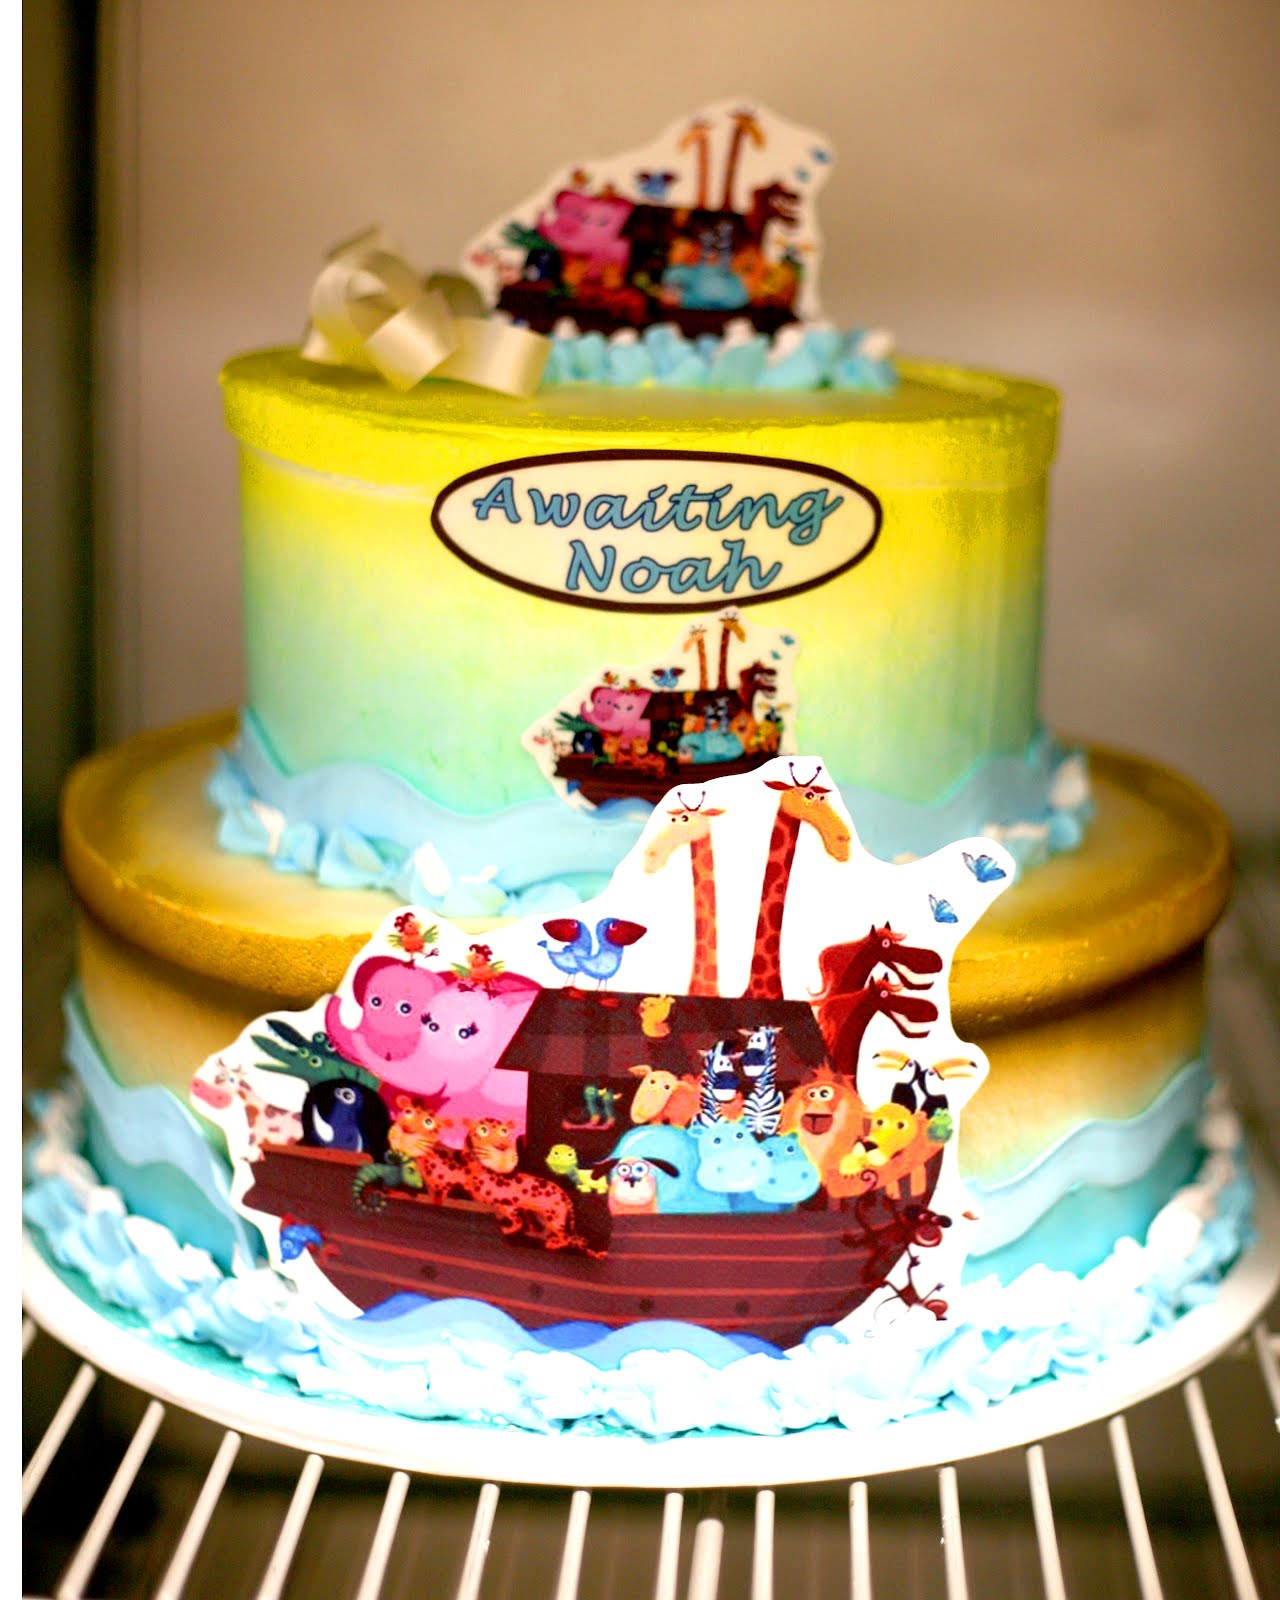 Hector s Custom Cakes CLASSIC BABY SHOWER CAKE NUETRAL